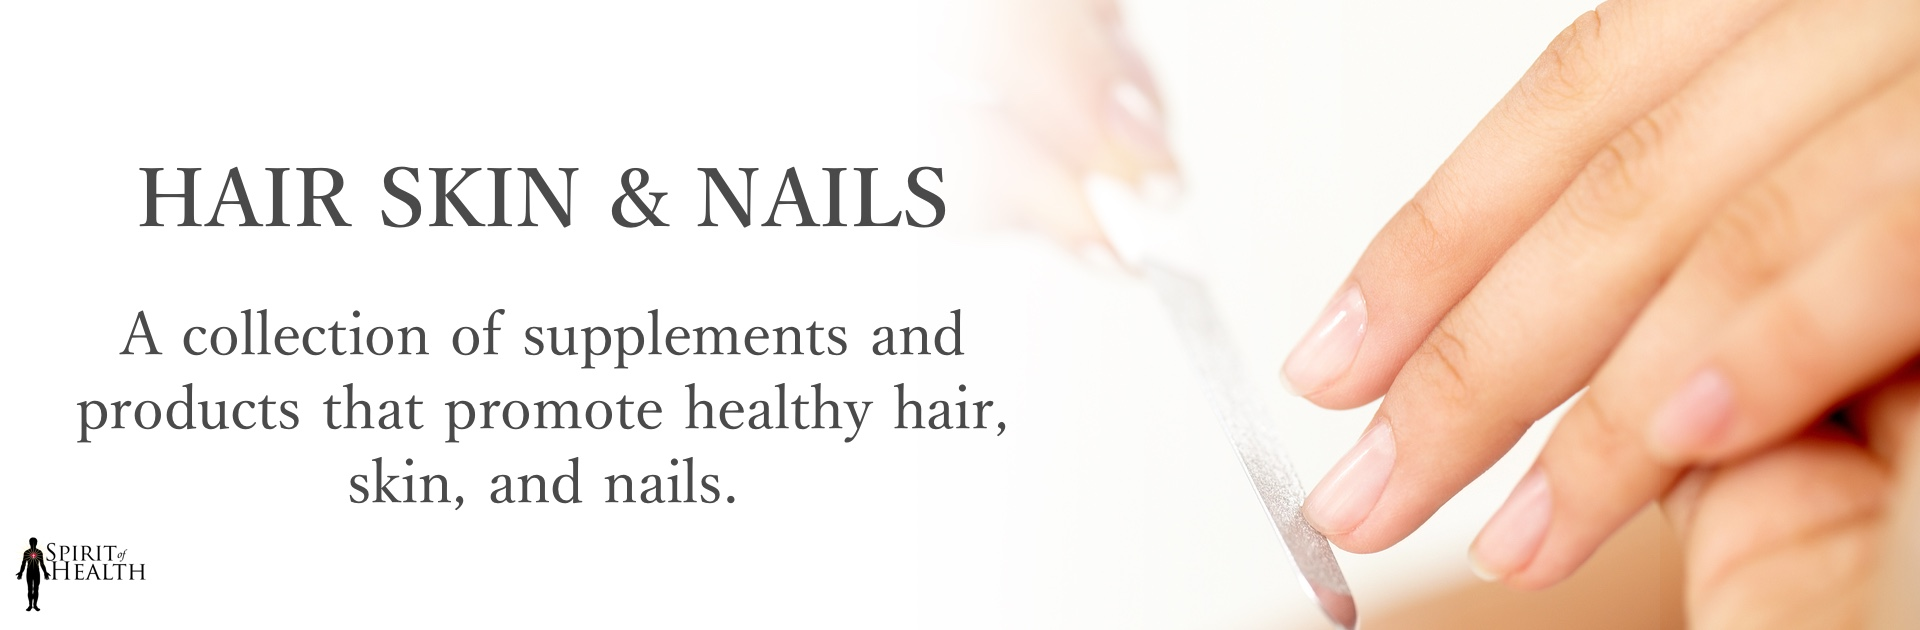 hair-skin-and-nails.jpg